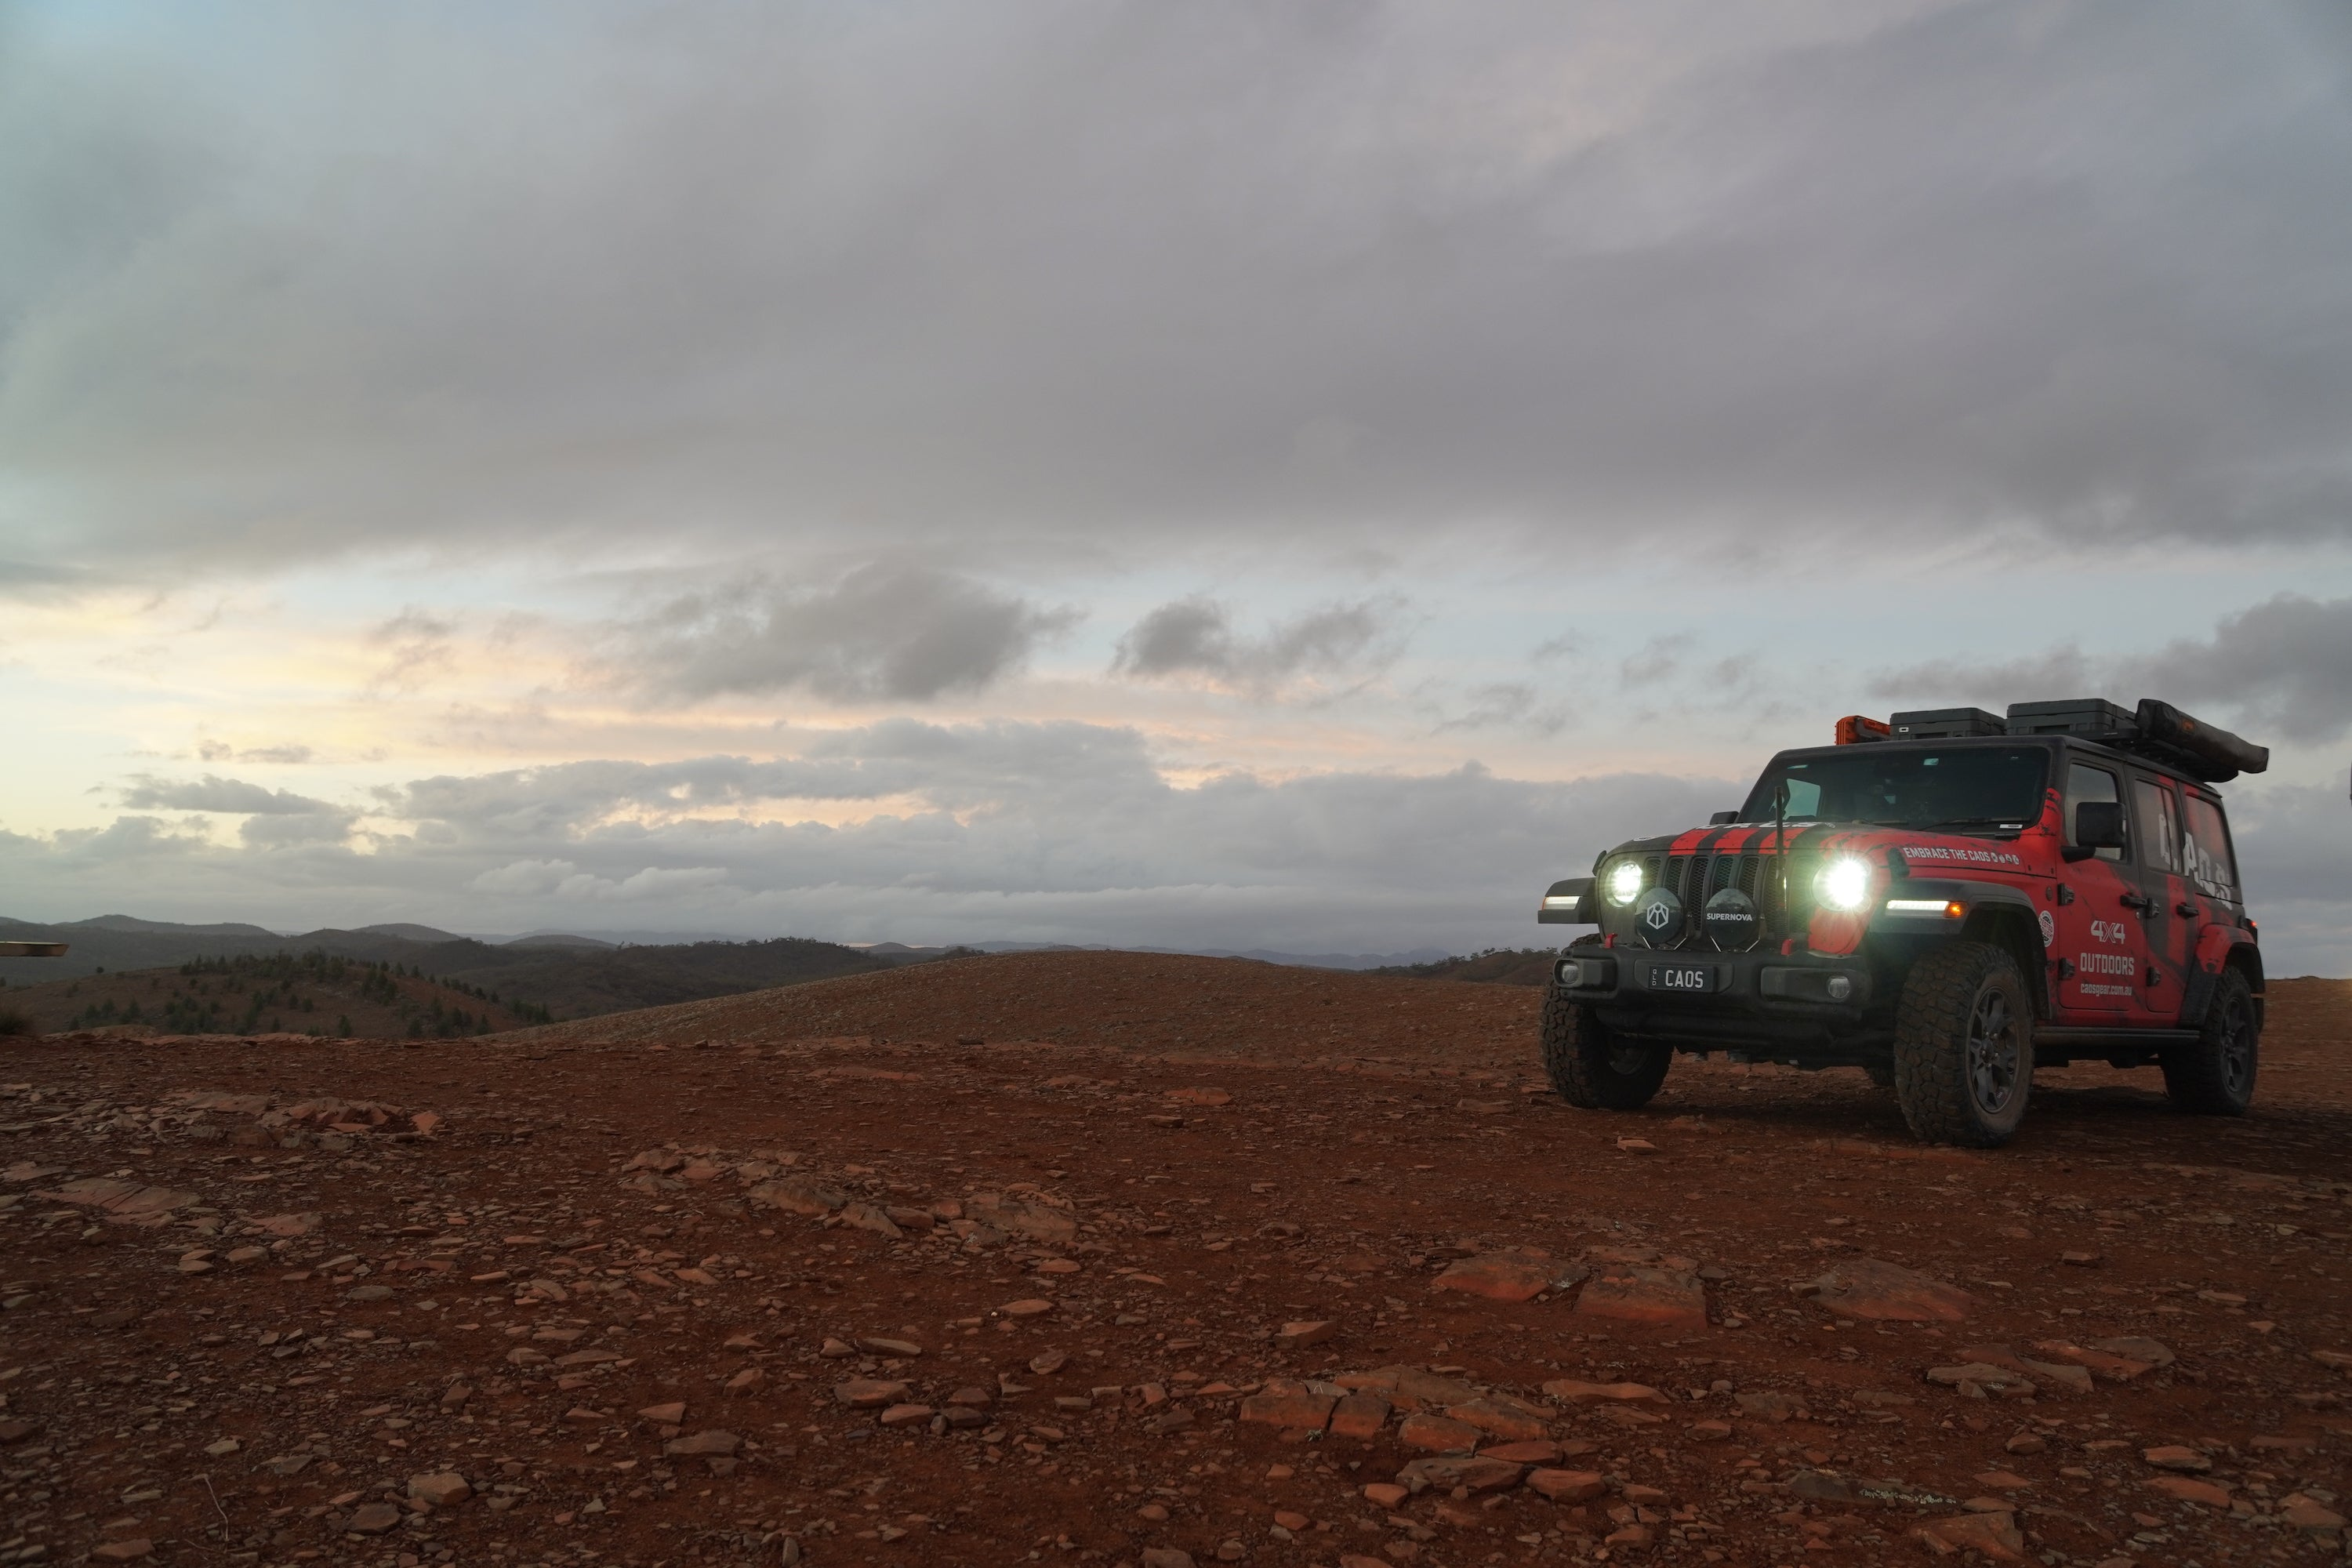 Sunset At Alpana Station with CAOS 4x4